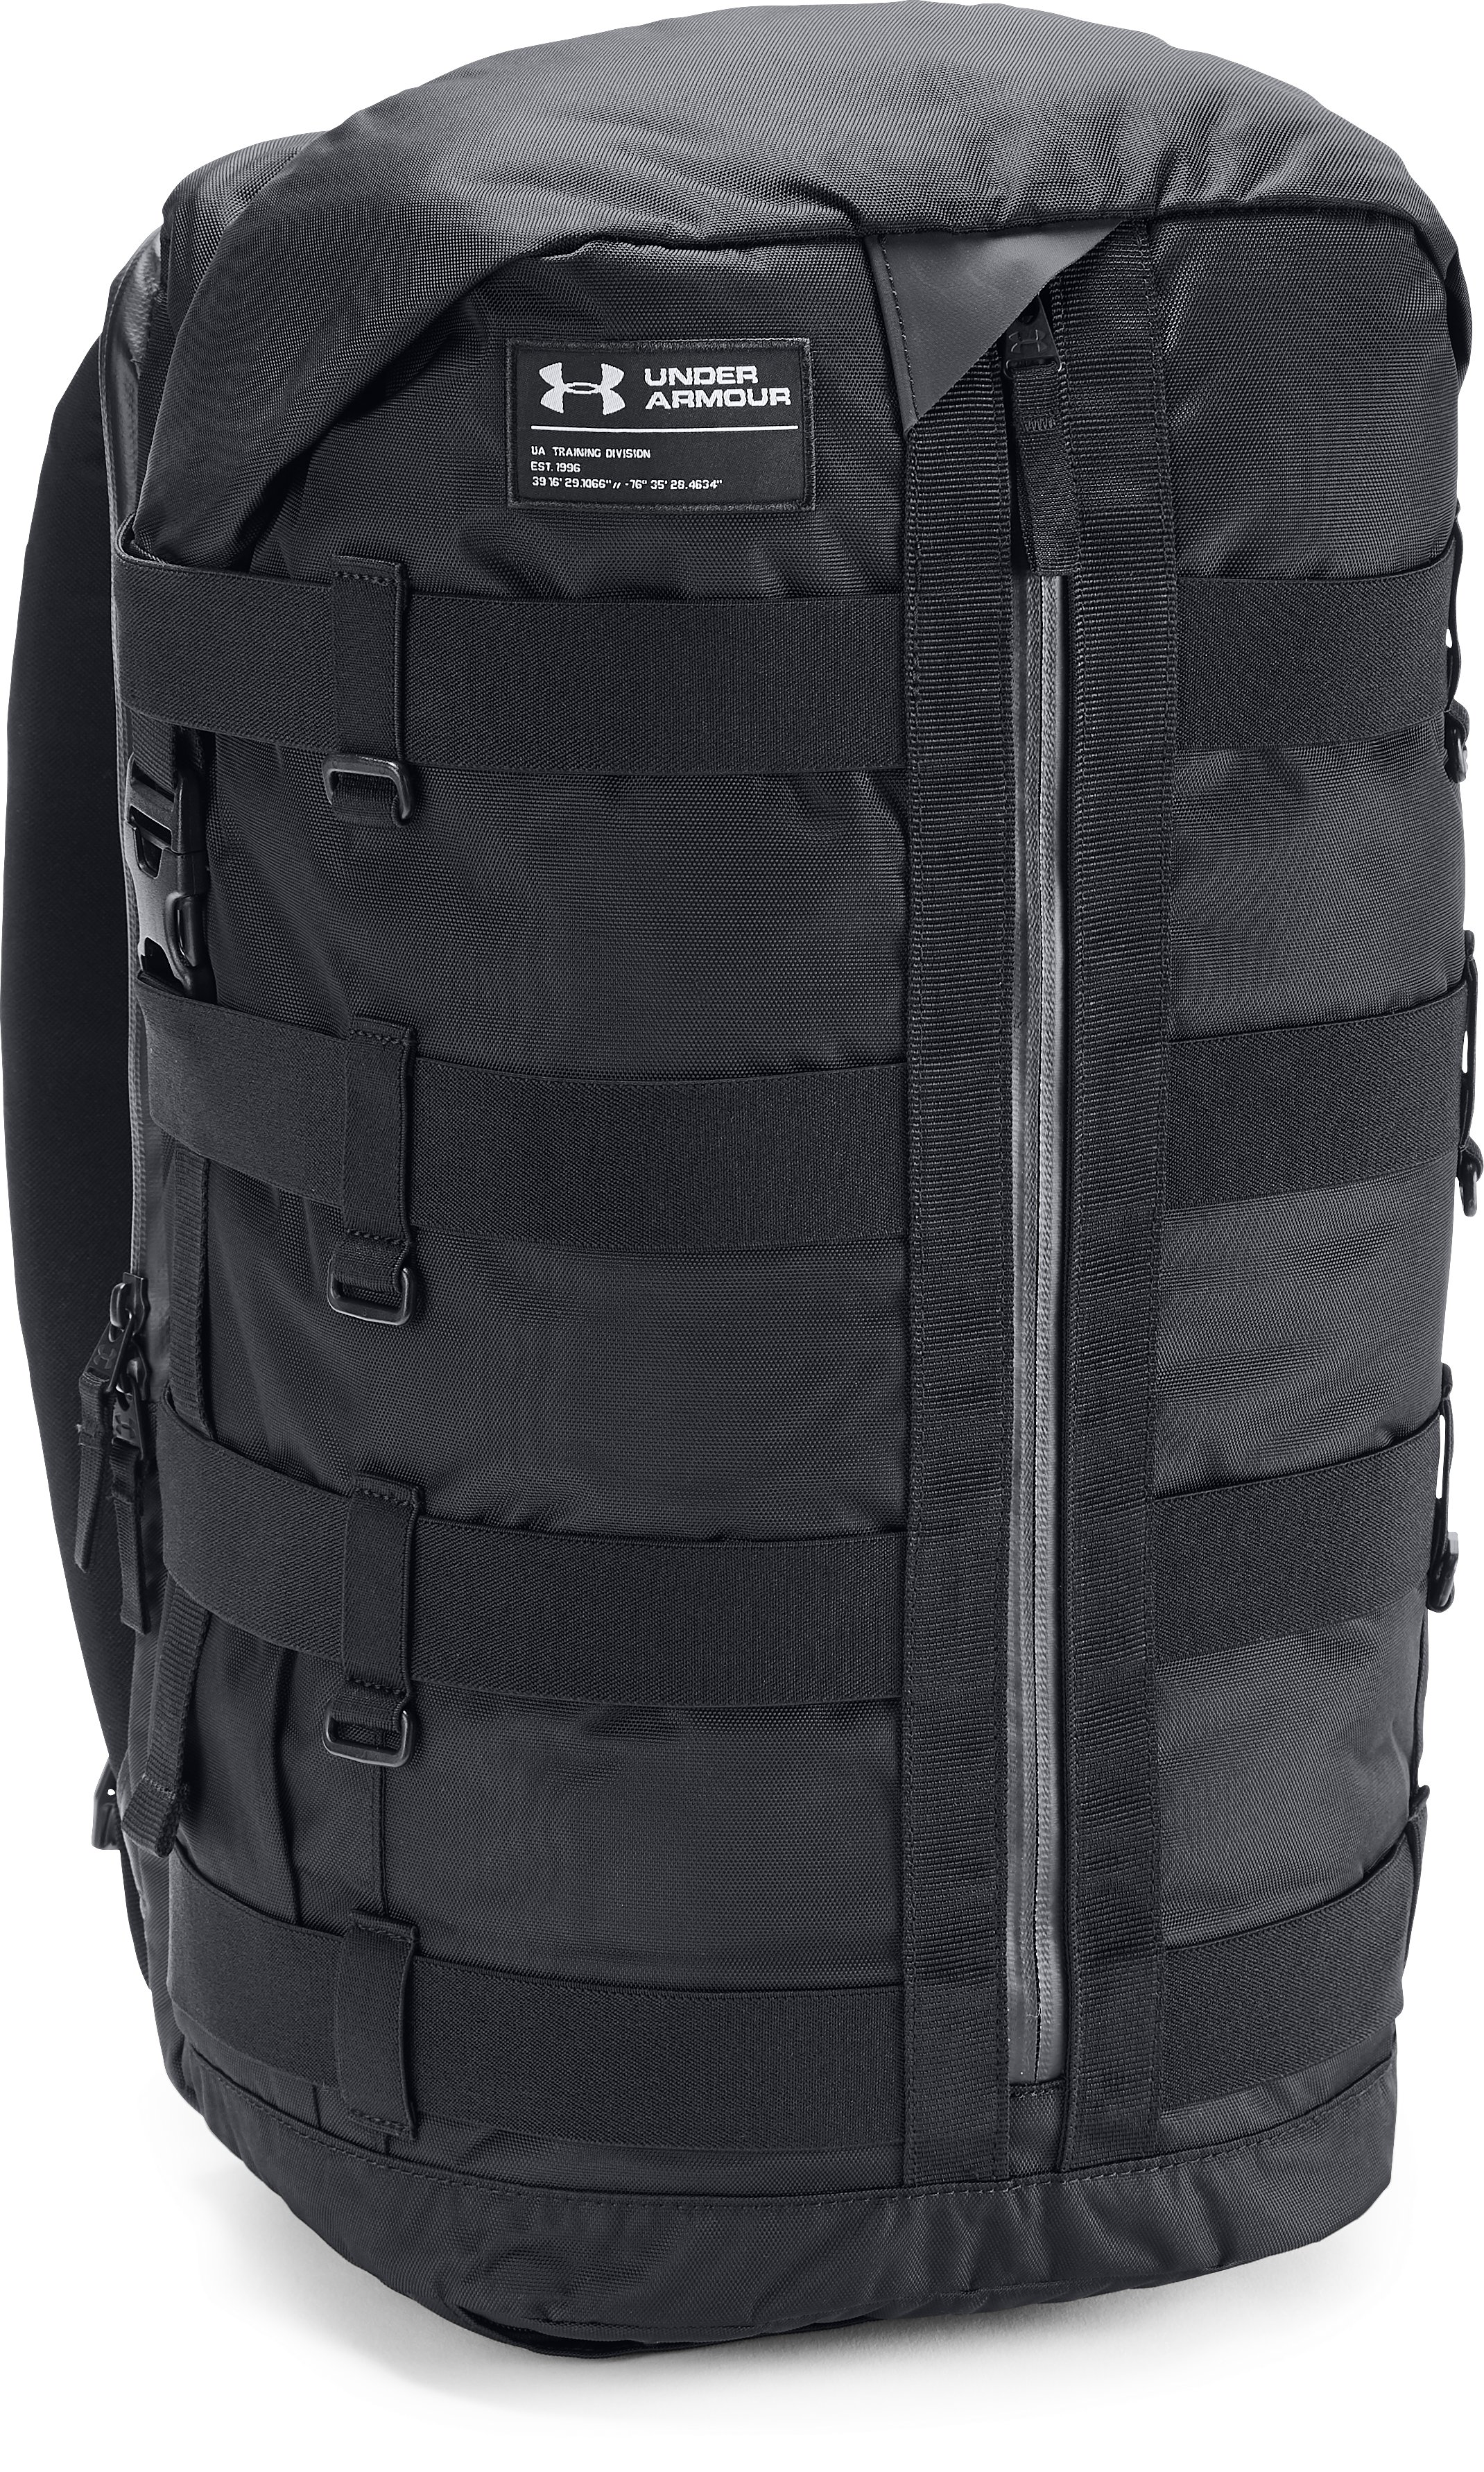 Pursuit of Victory Gear Bag, Black , zoomed